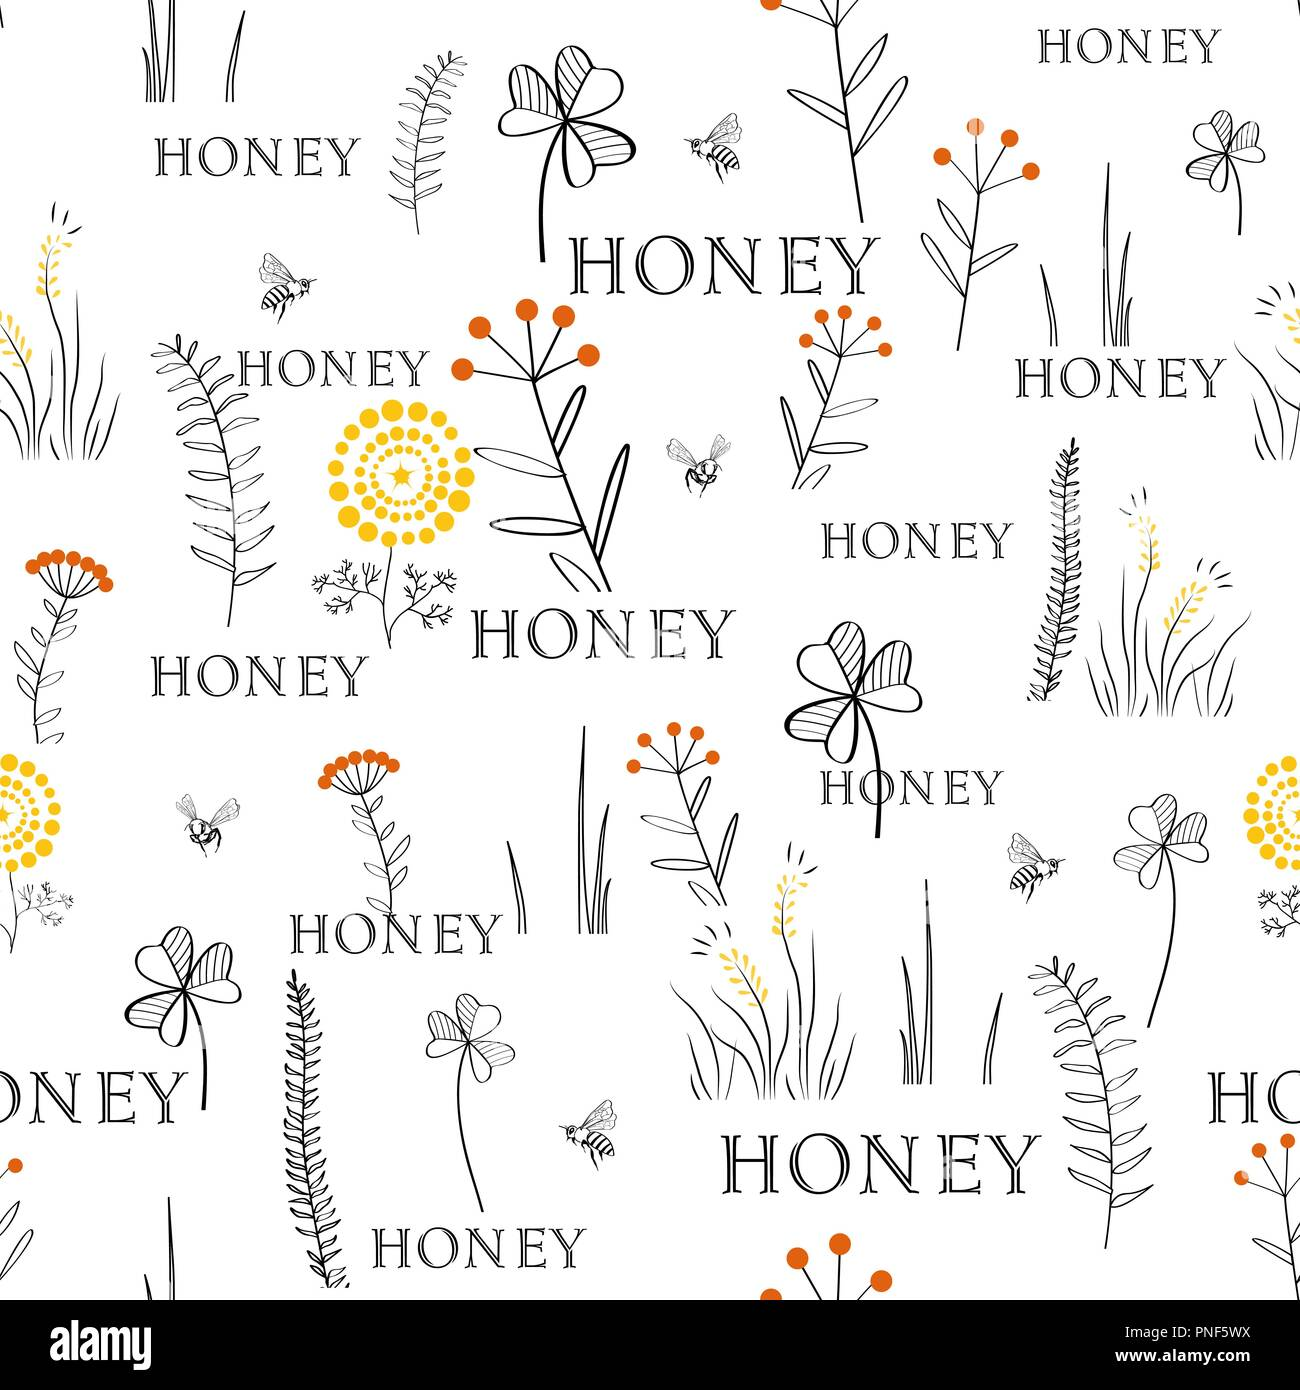 Seamless vector pattern with bees and flowers. Hand drawn vintage graphic doodle design. Sketch pattern for print on fabric. Vector illustration. Endl - Stock Image